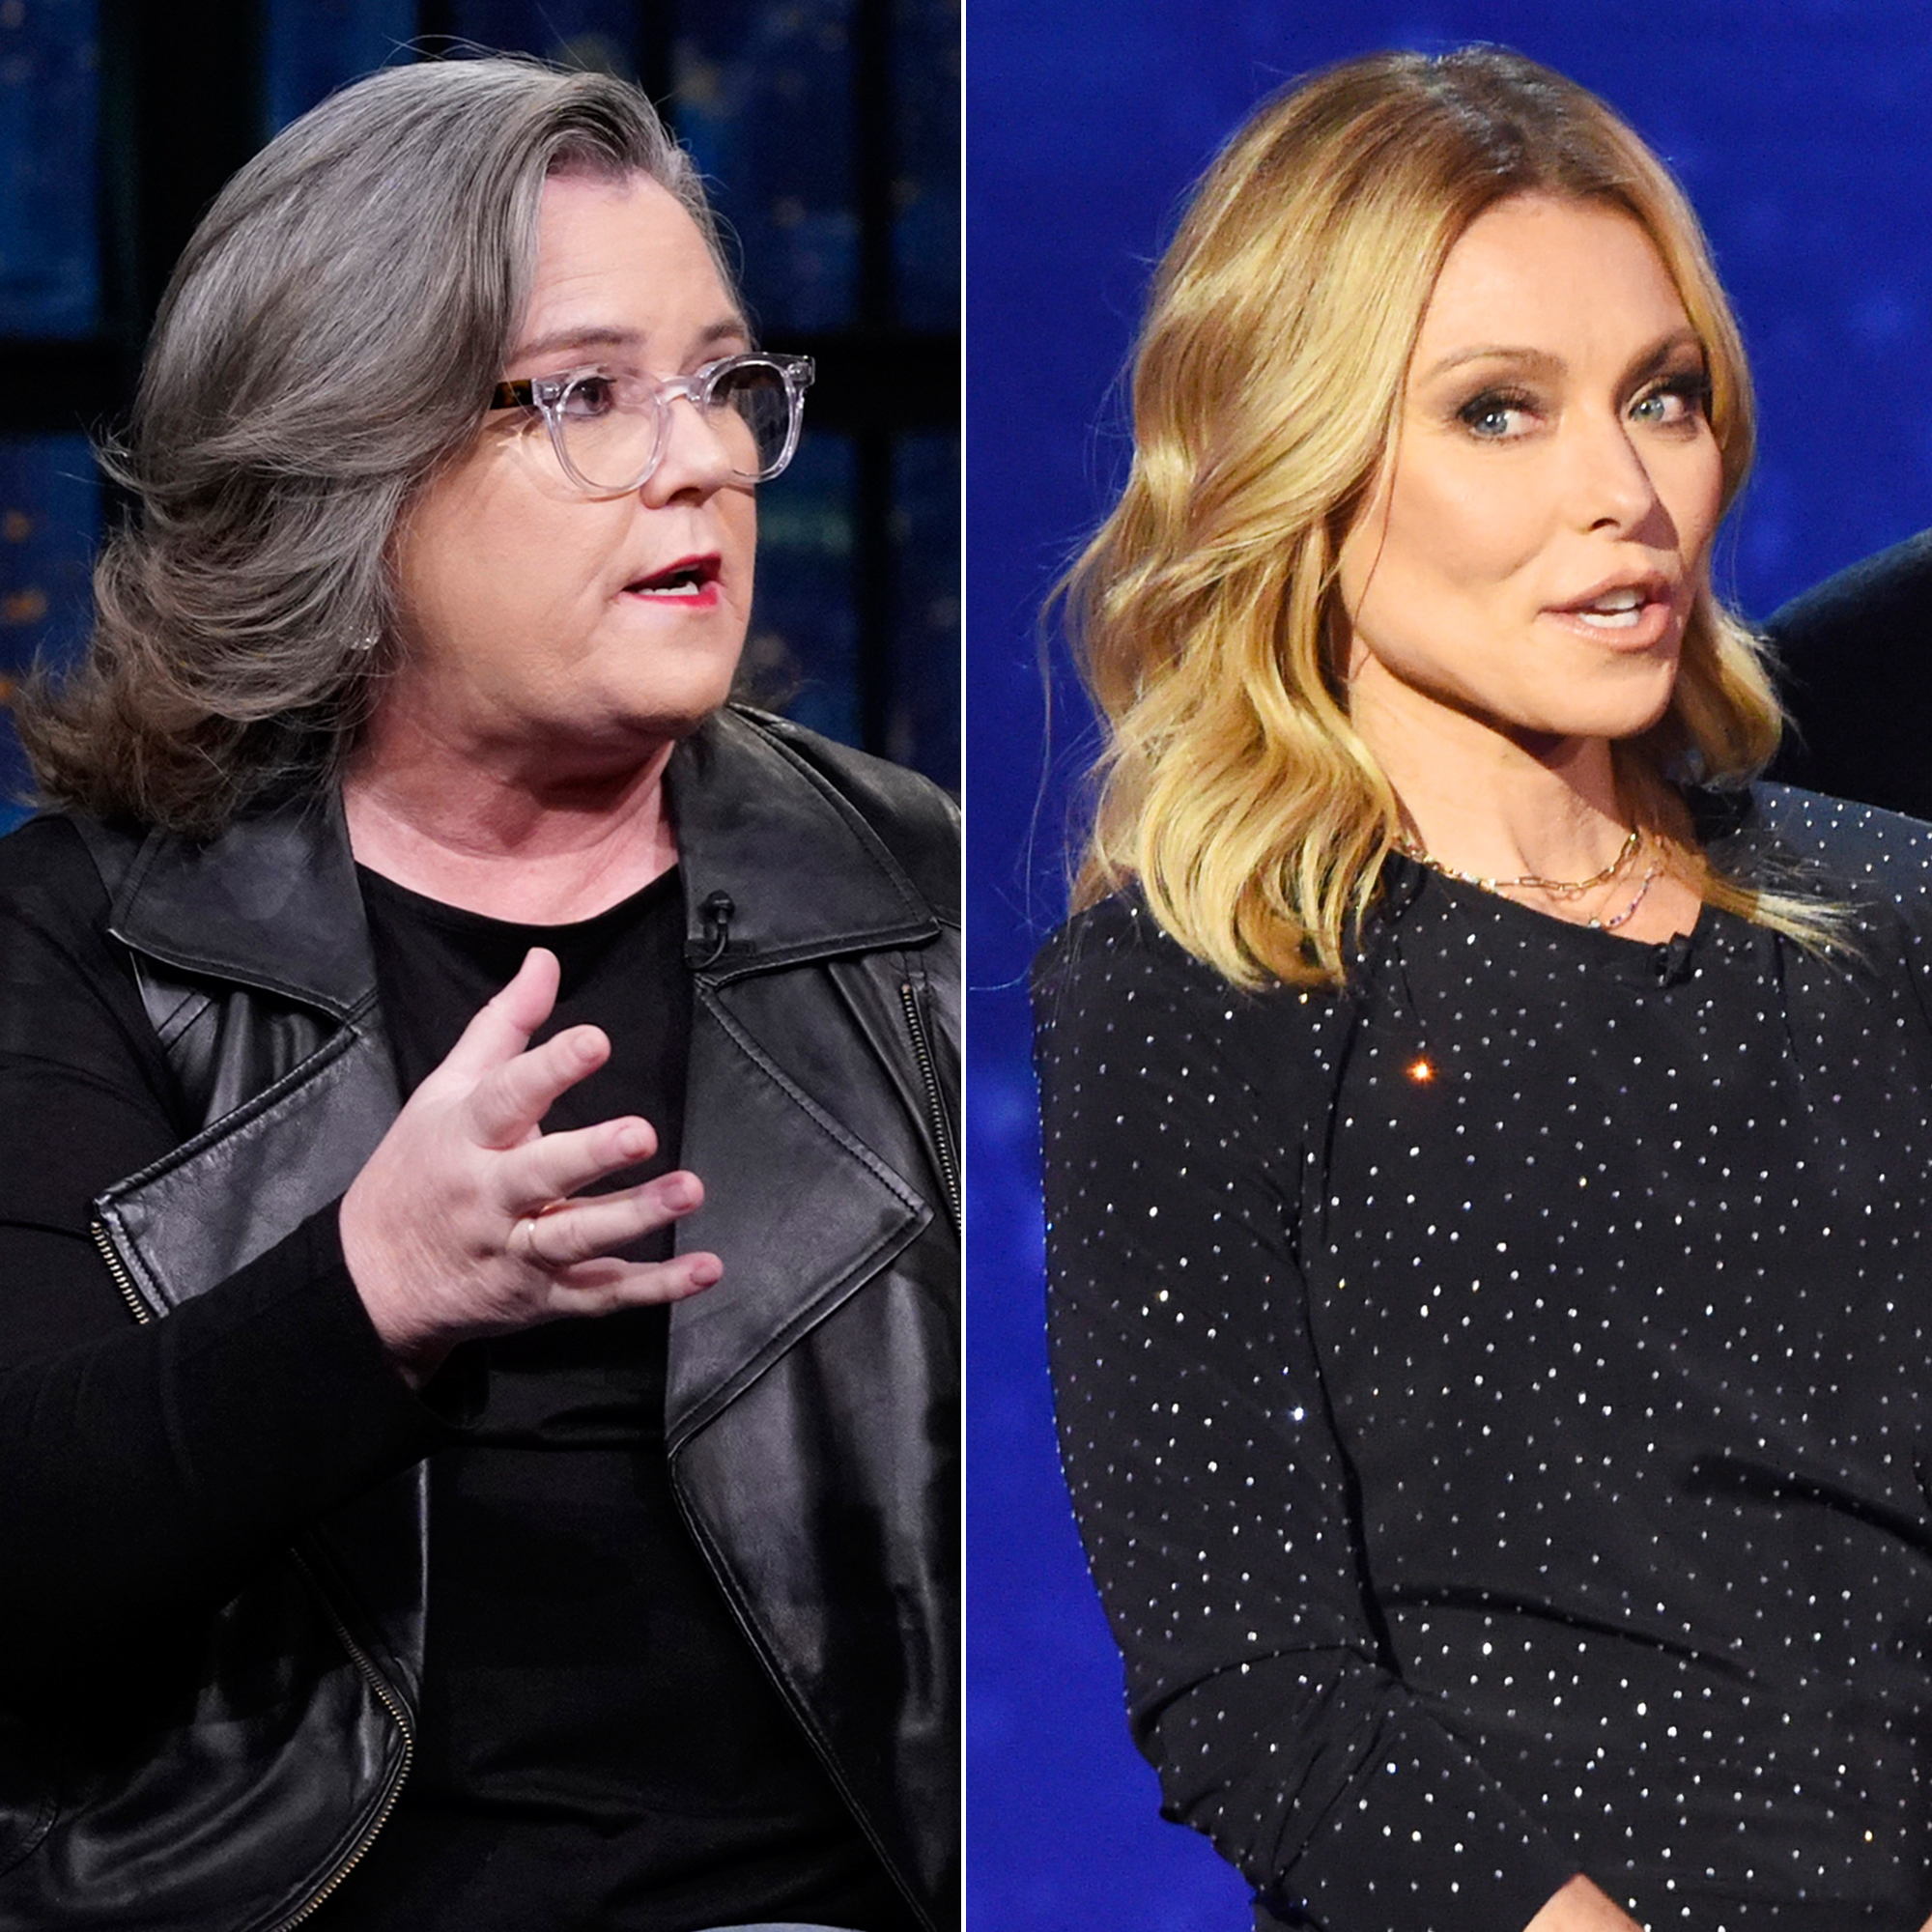 rosie-odonnell-calls-kelly-ripa-mean-still-beefing-12-years-after-their-feud